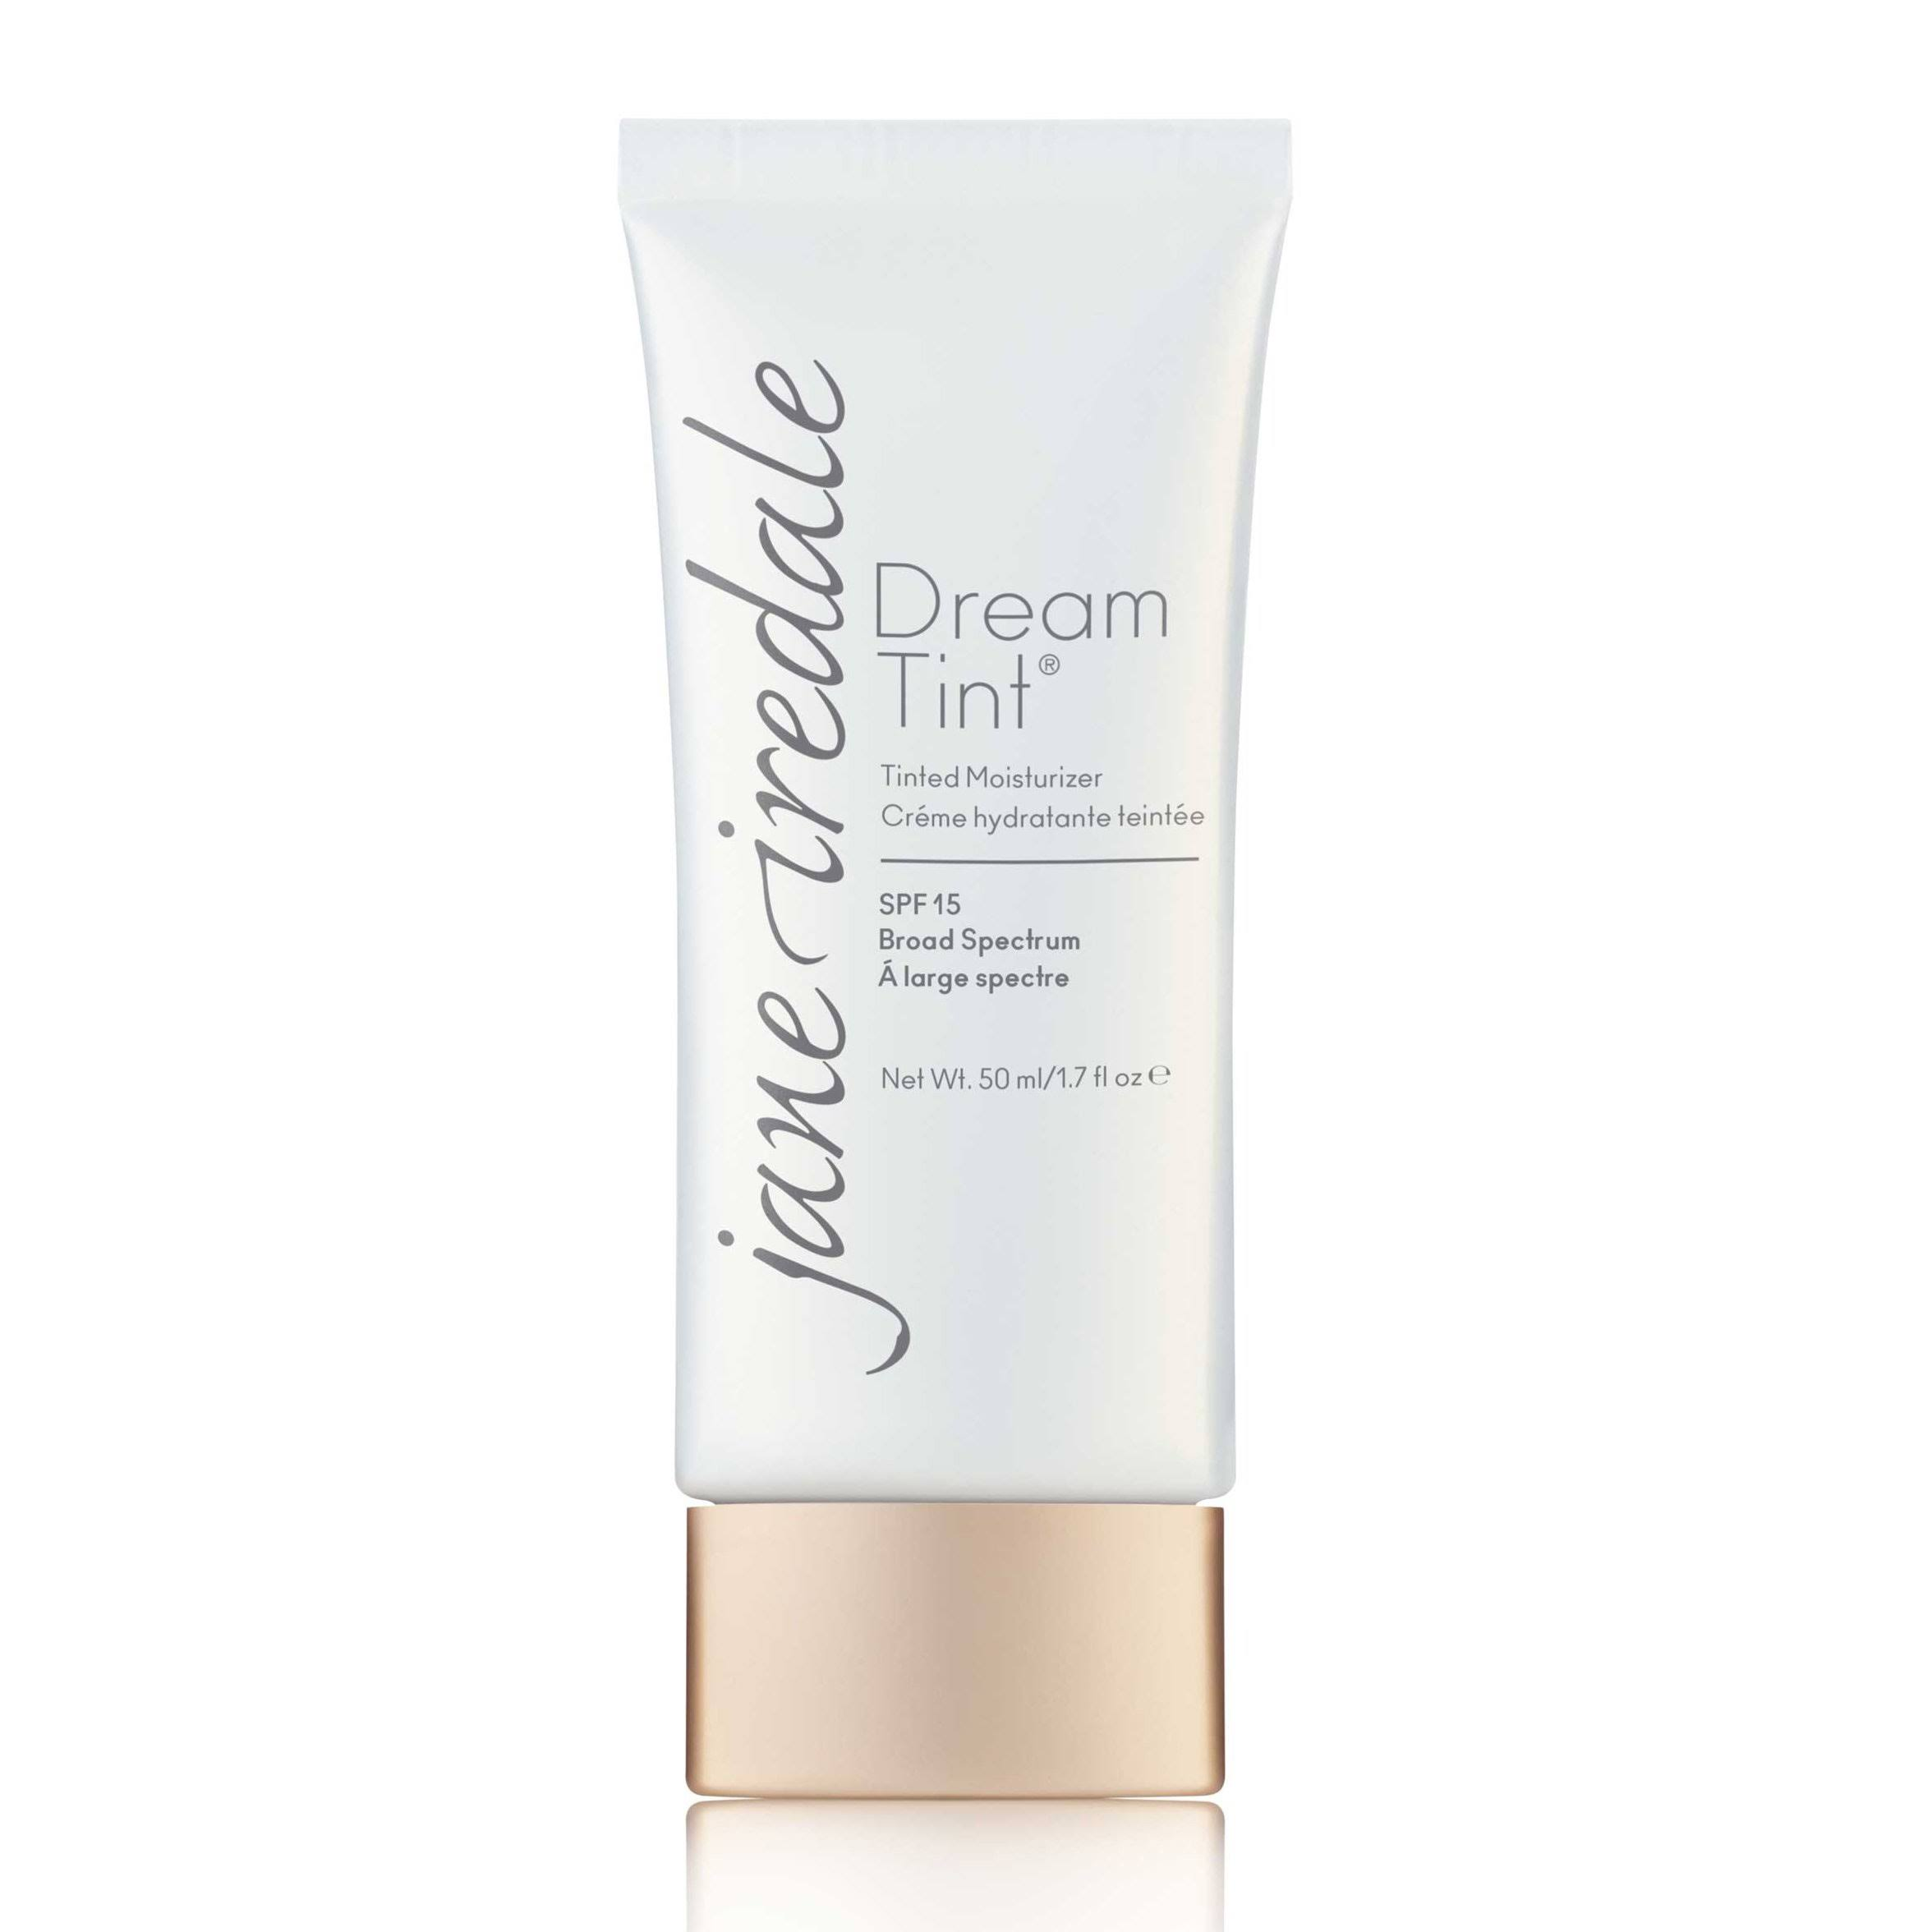 jane iredale Dream Tint Tinted Moisturizer - Medium Dark, 50ml